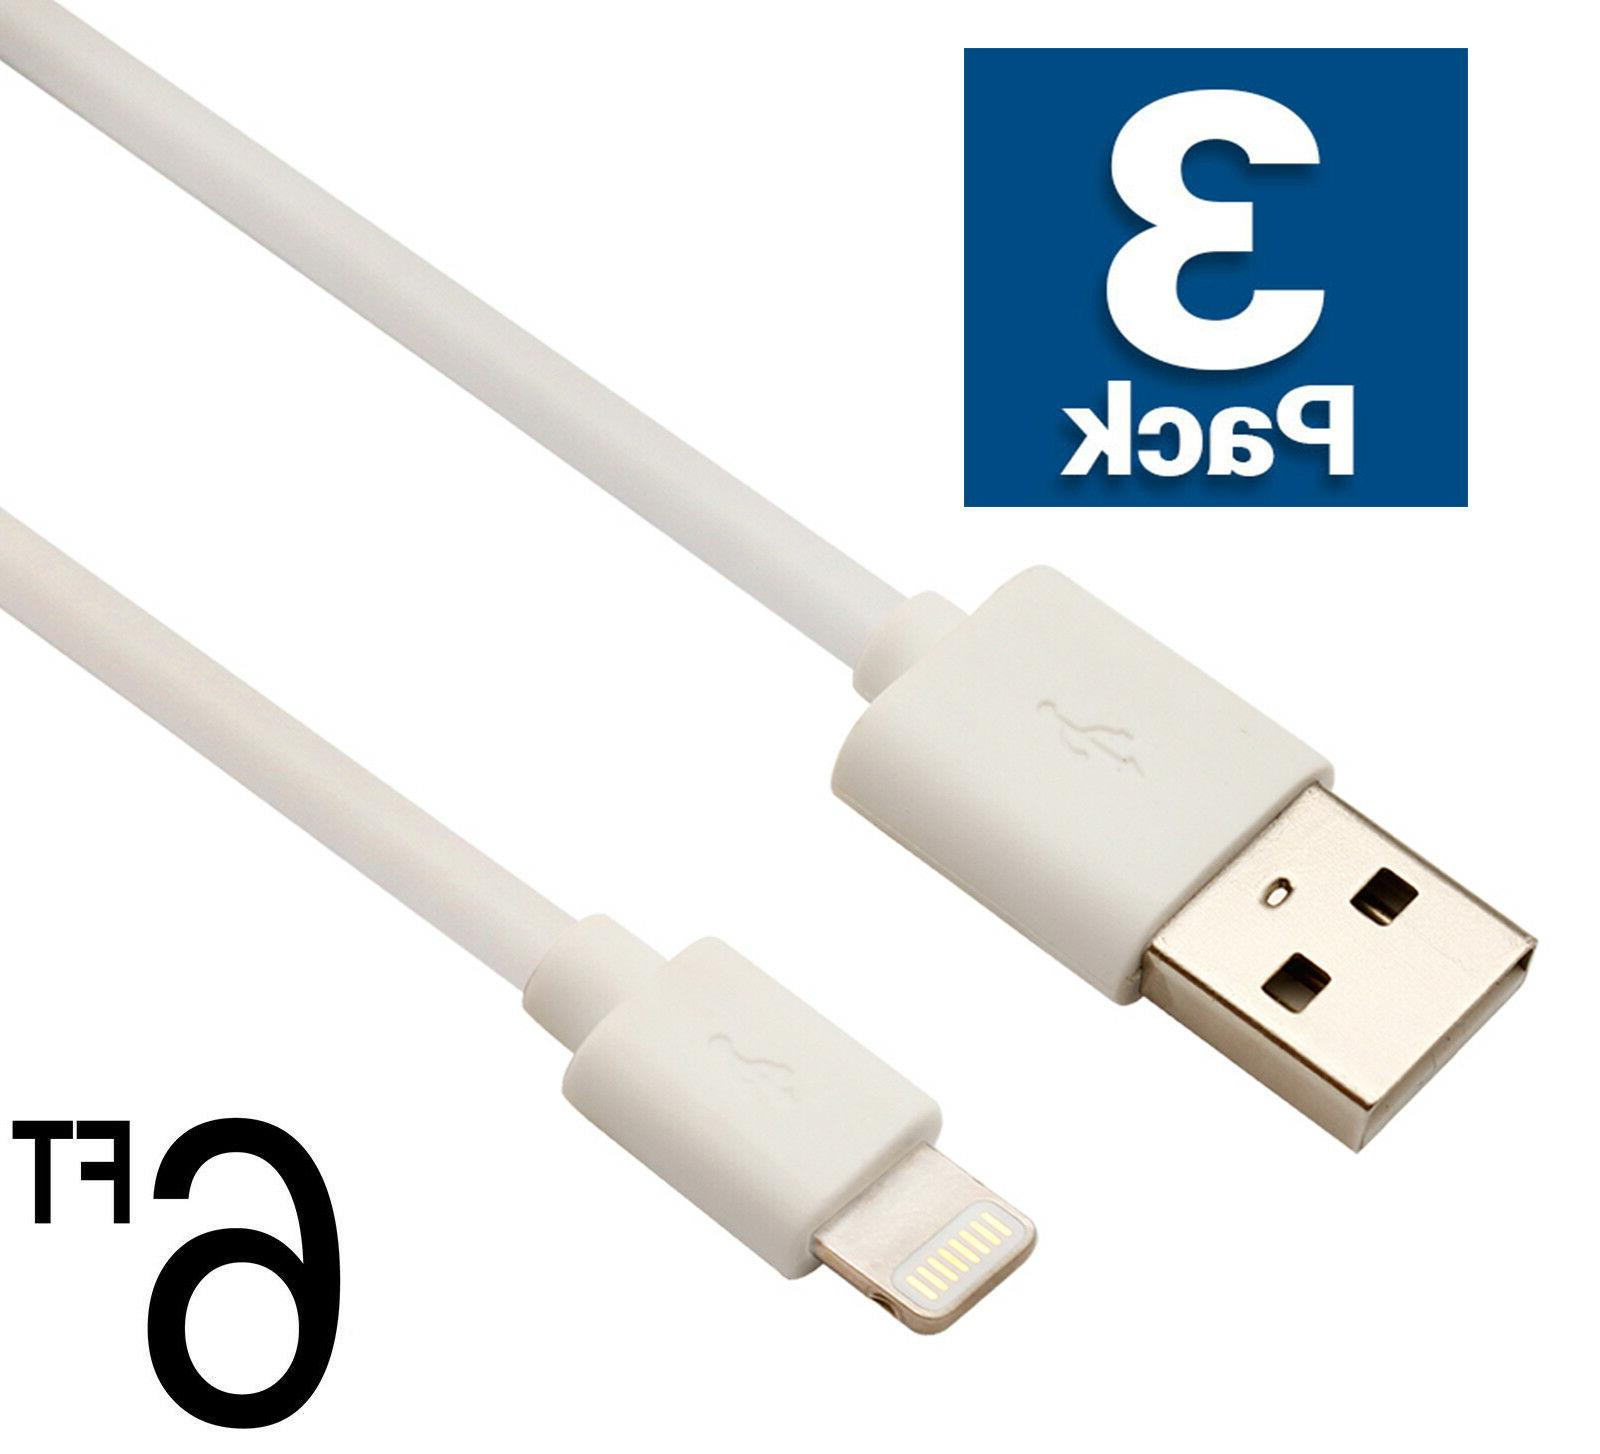 3x usb cable charger 6ft 2m compatible